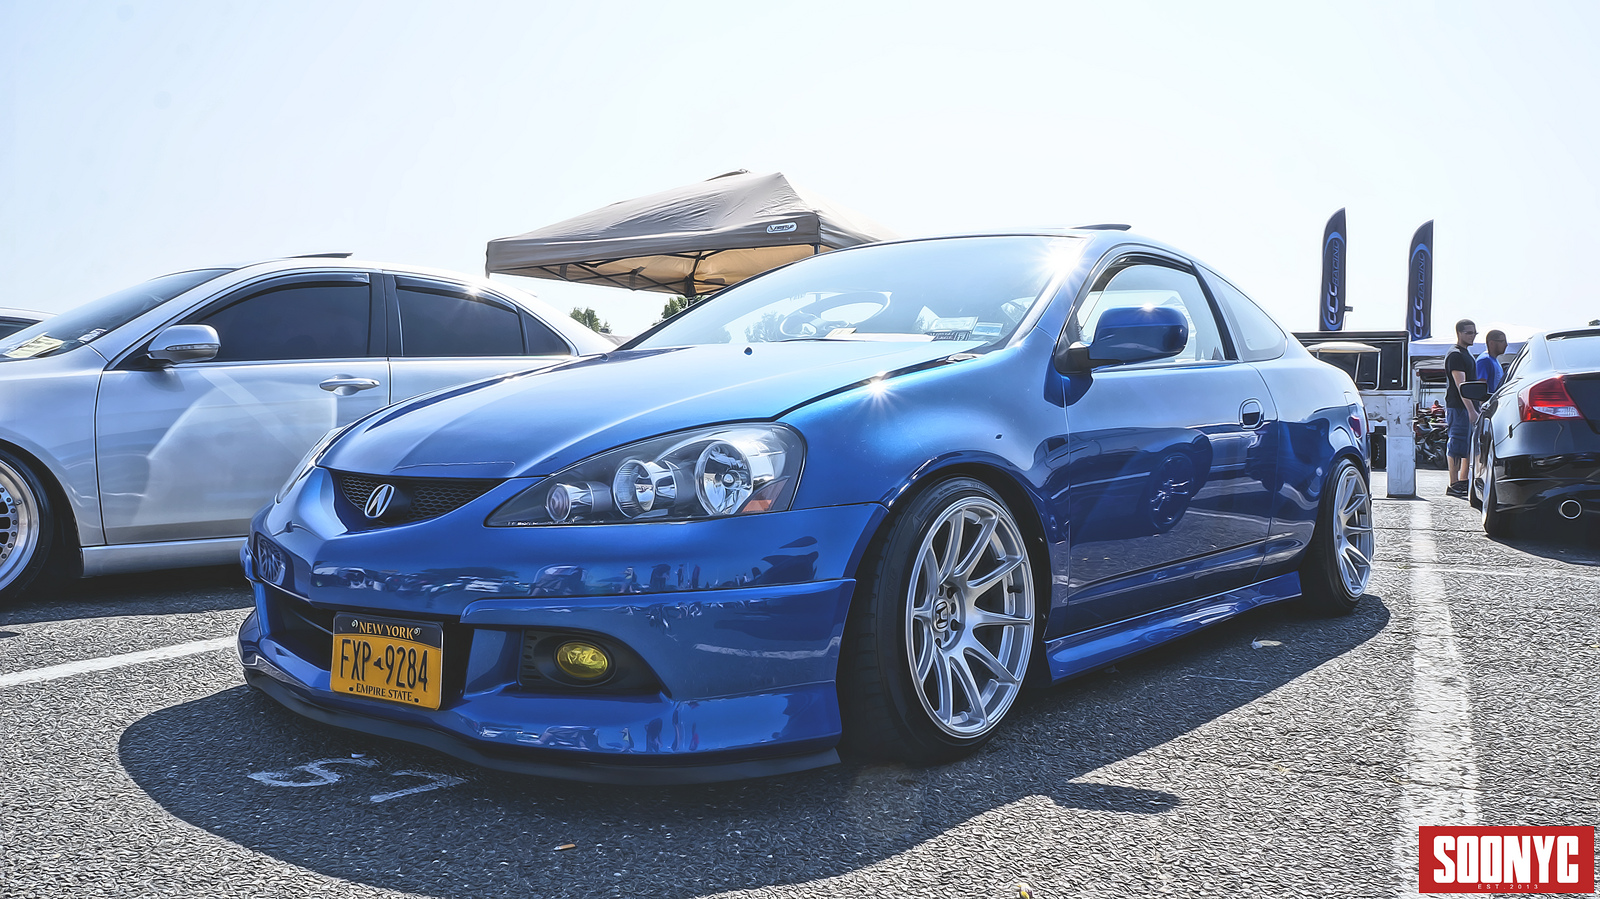 rsx 5 acura rsx 2004 topismag net acura rsx tuning 3 2004 acura rsx